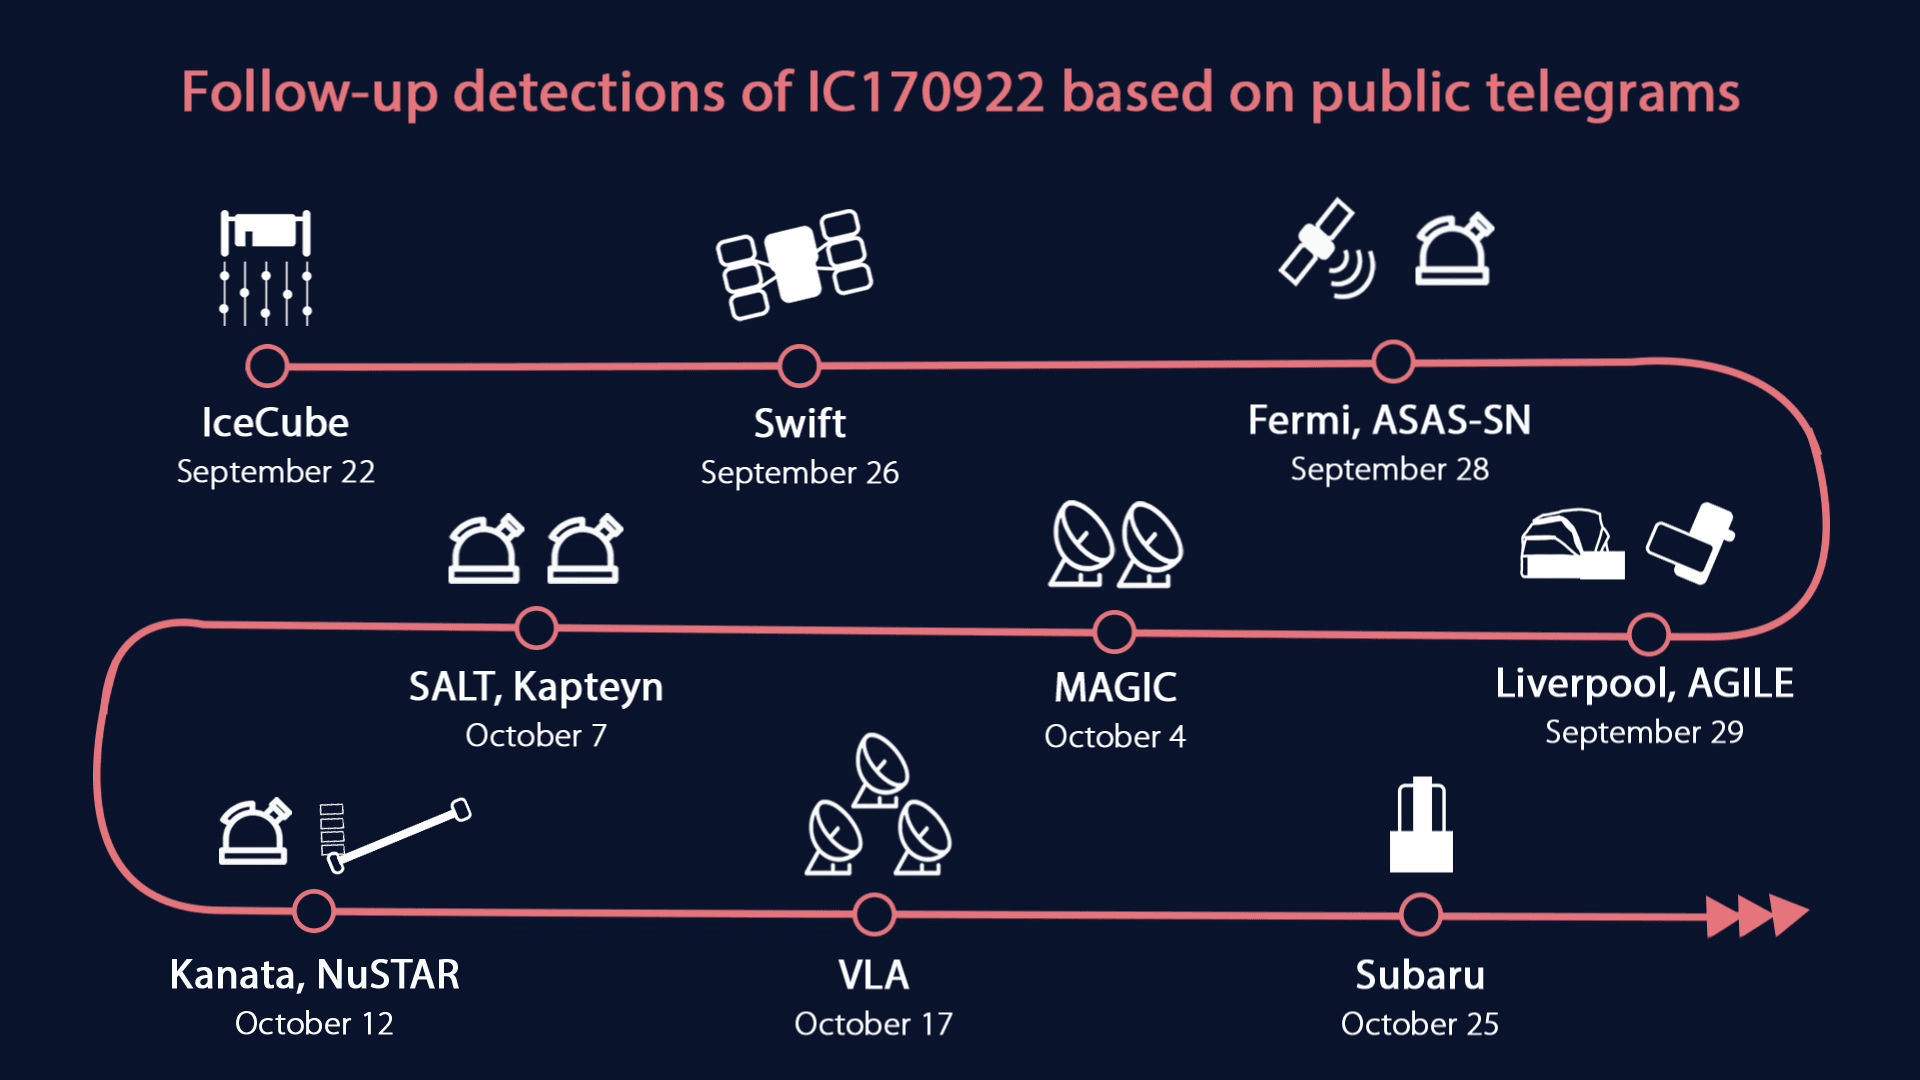 Follow-up detections of IC170922 based on public telegrams